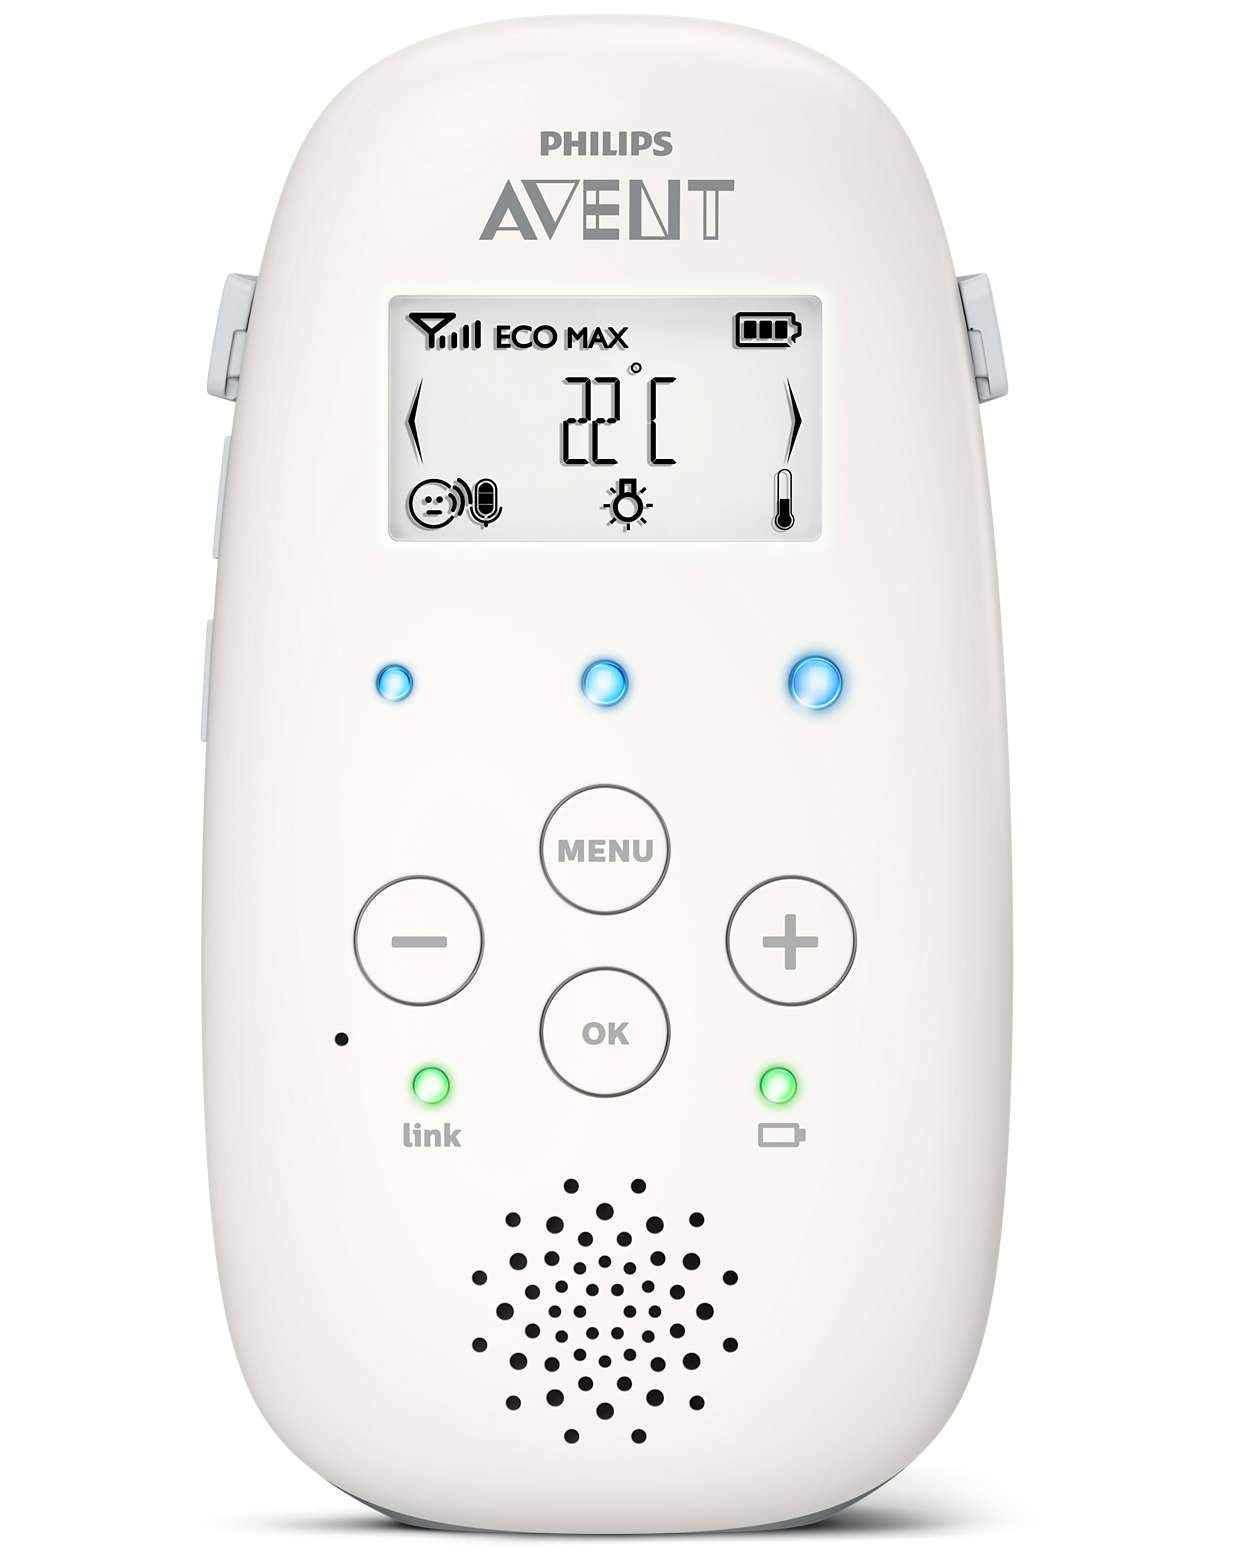 Philips Avent DECT Baby Monitor with Temperature Monitoring, Night Light and 5 Lullabies - SCD710/05 Philips Reliable, crystal clear connection to your baby within a range of up to 330 meters* 100% privacy - DECT technology provides a secure and private connection Talk to your baby remotely 5